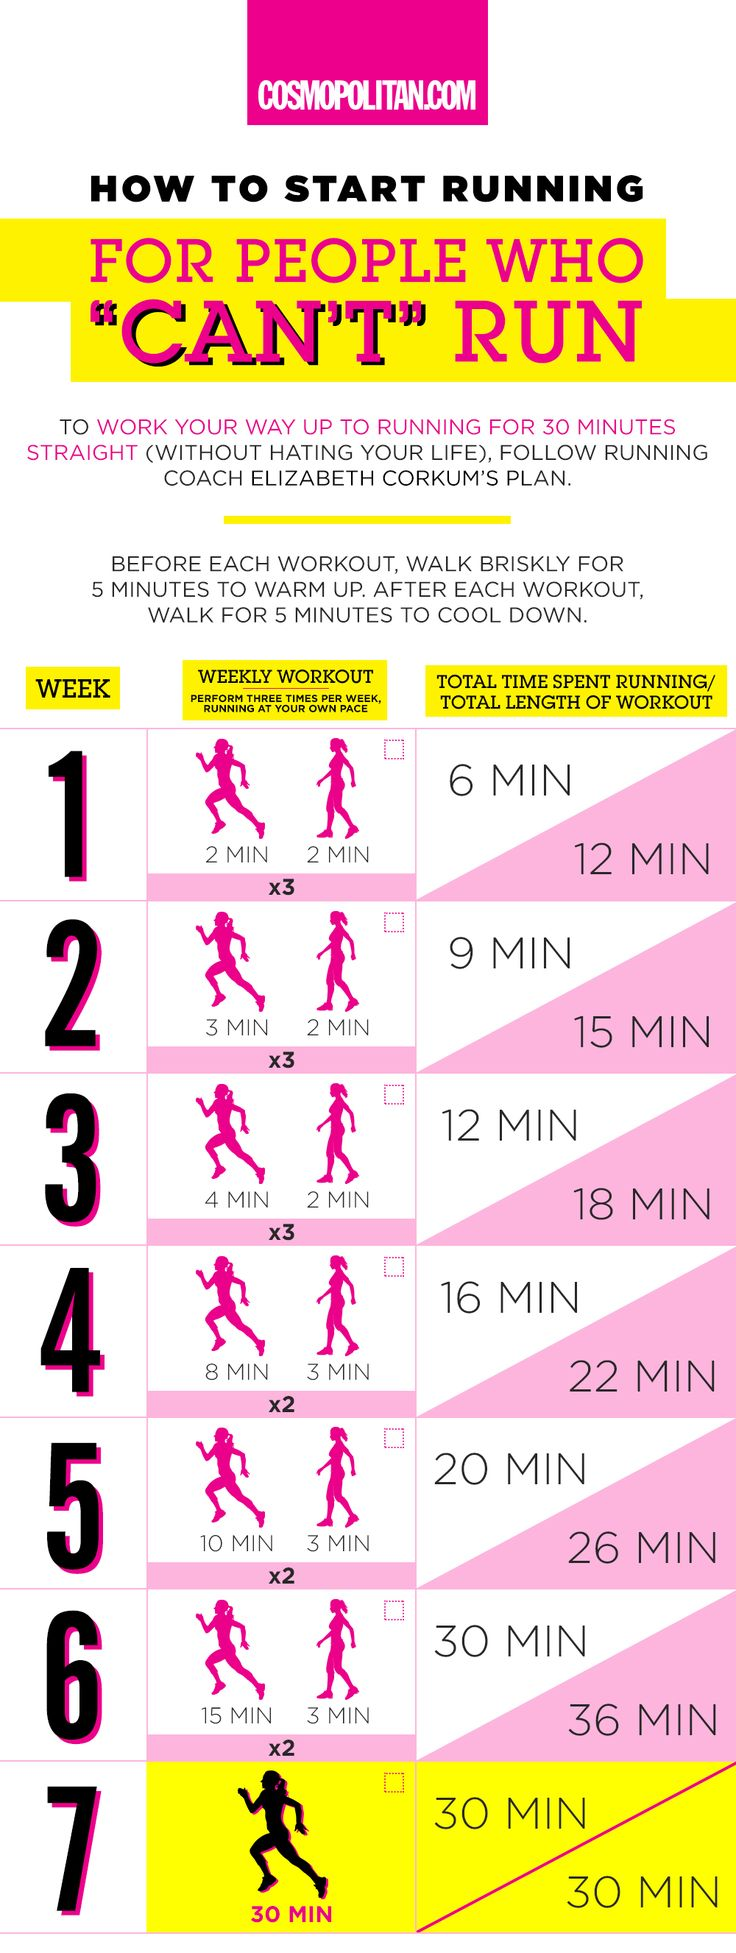 How to Become a Runner Even if You Think You Hate Running - http://www.cosmopolitan.com/health-fitness/how-to/a47277/how-to-start-running/